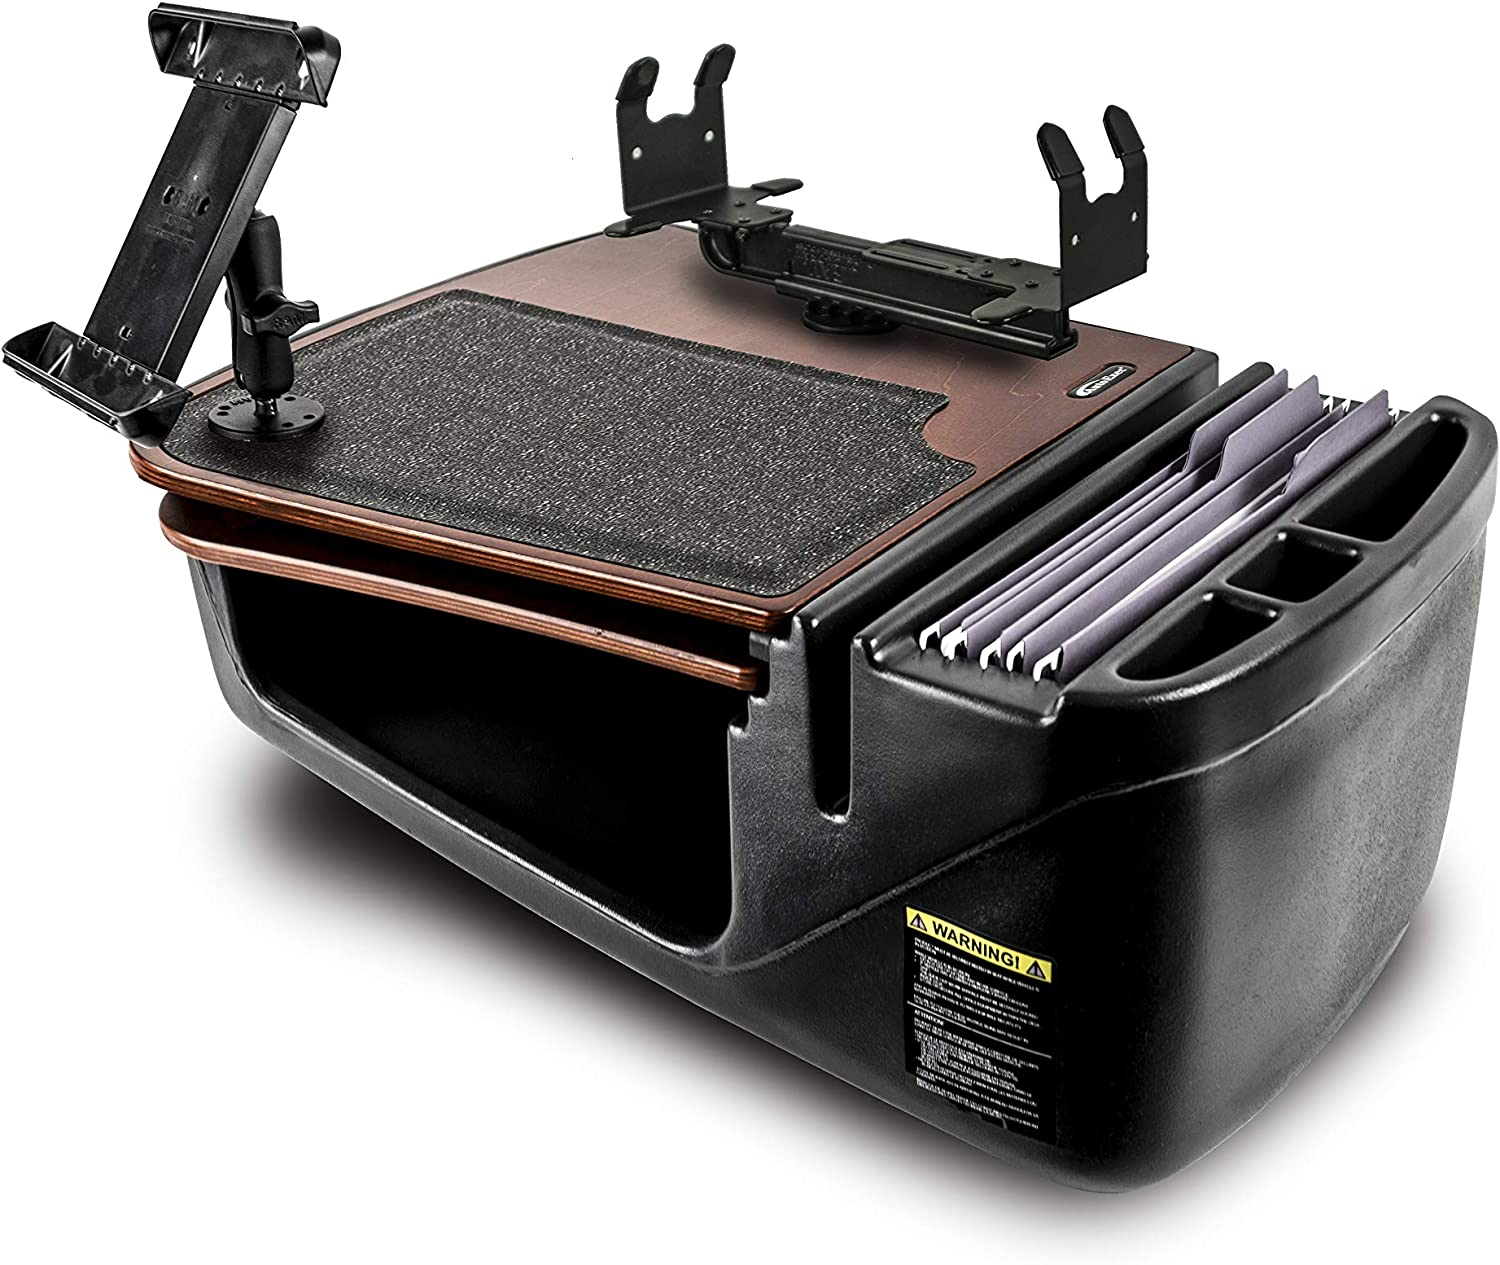 AutoExec AUE15350 GripMaster Car Desk Mahogany Finish with Printer Stand and Tablet Mount